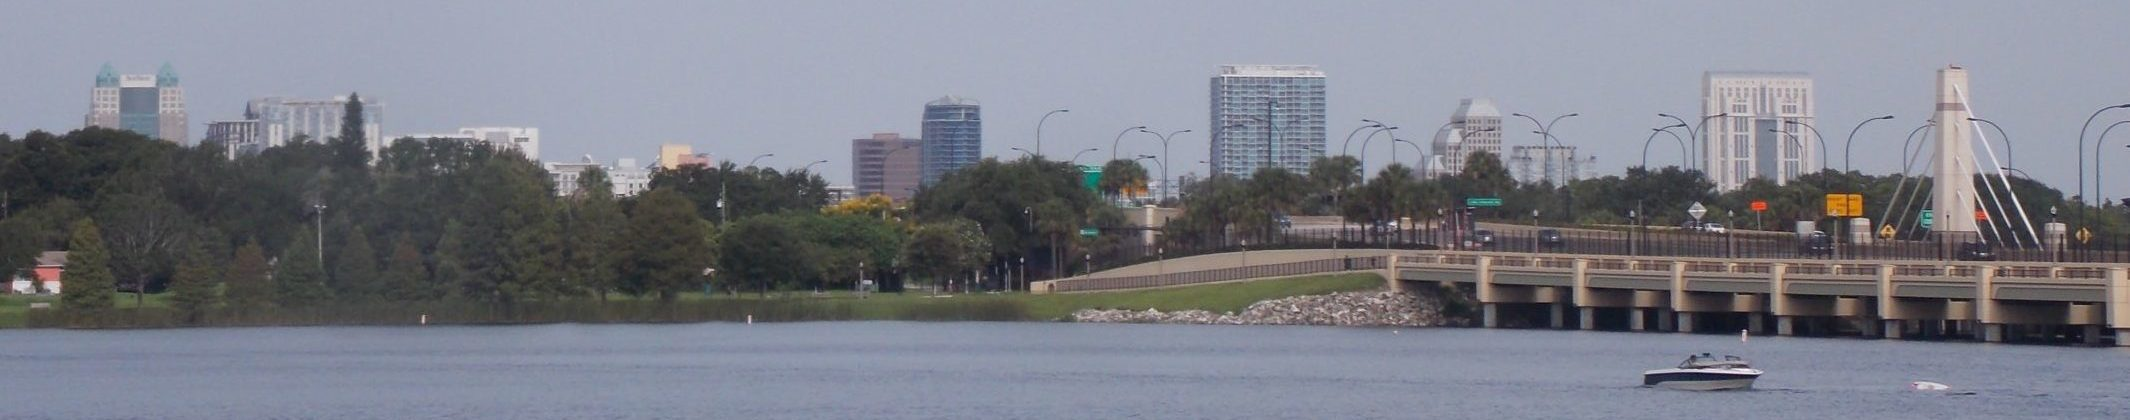 Lake underhill and down town skyline